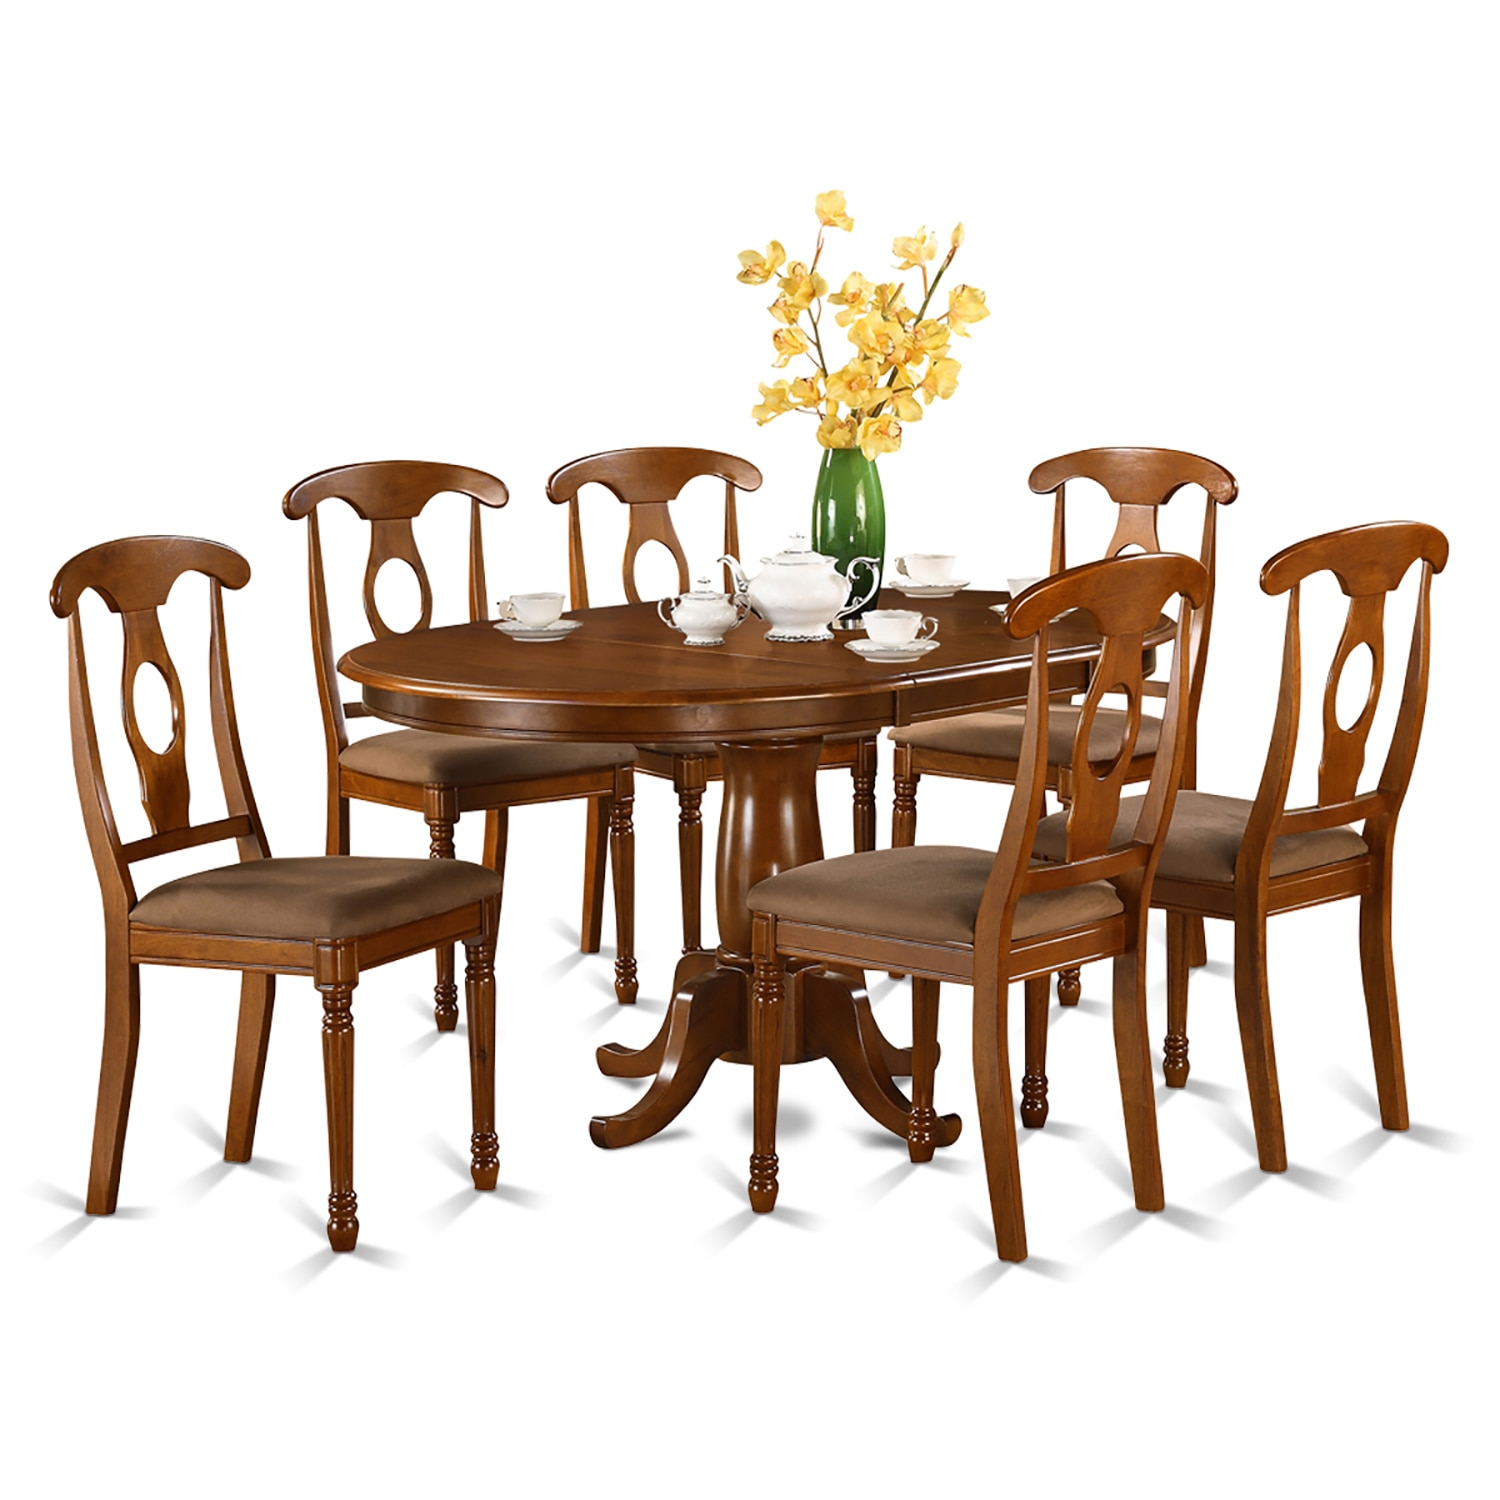 pona7 sbr w 7 piece dining room set oval dining table with